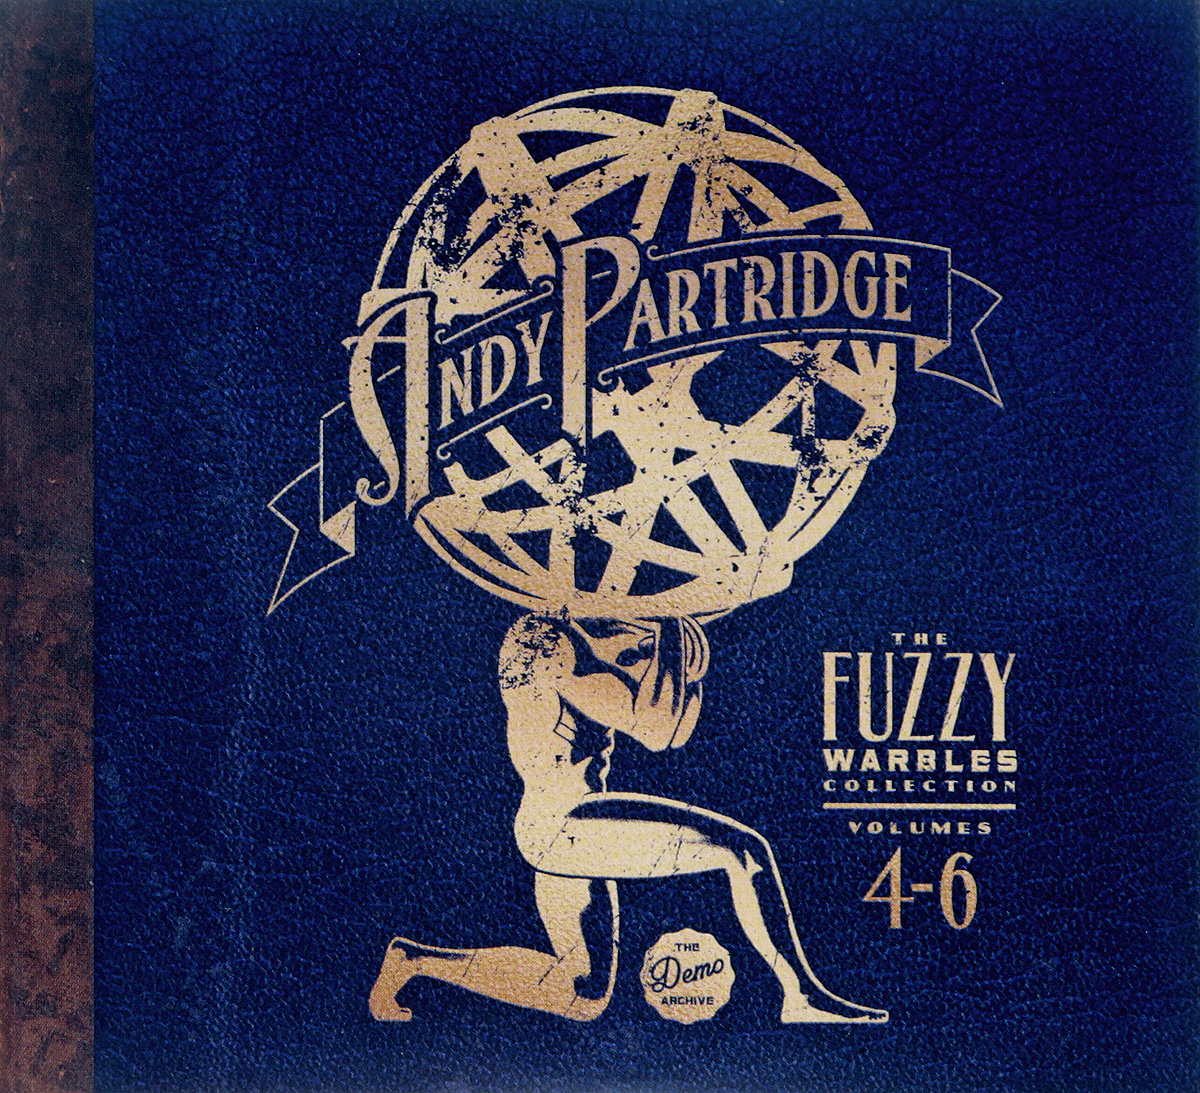 Andrew John Andy Partridge Andy Partridge. Fuzzy Warbles Volume 4-6 (3 CD) long john silver volume 3 the emerald maze